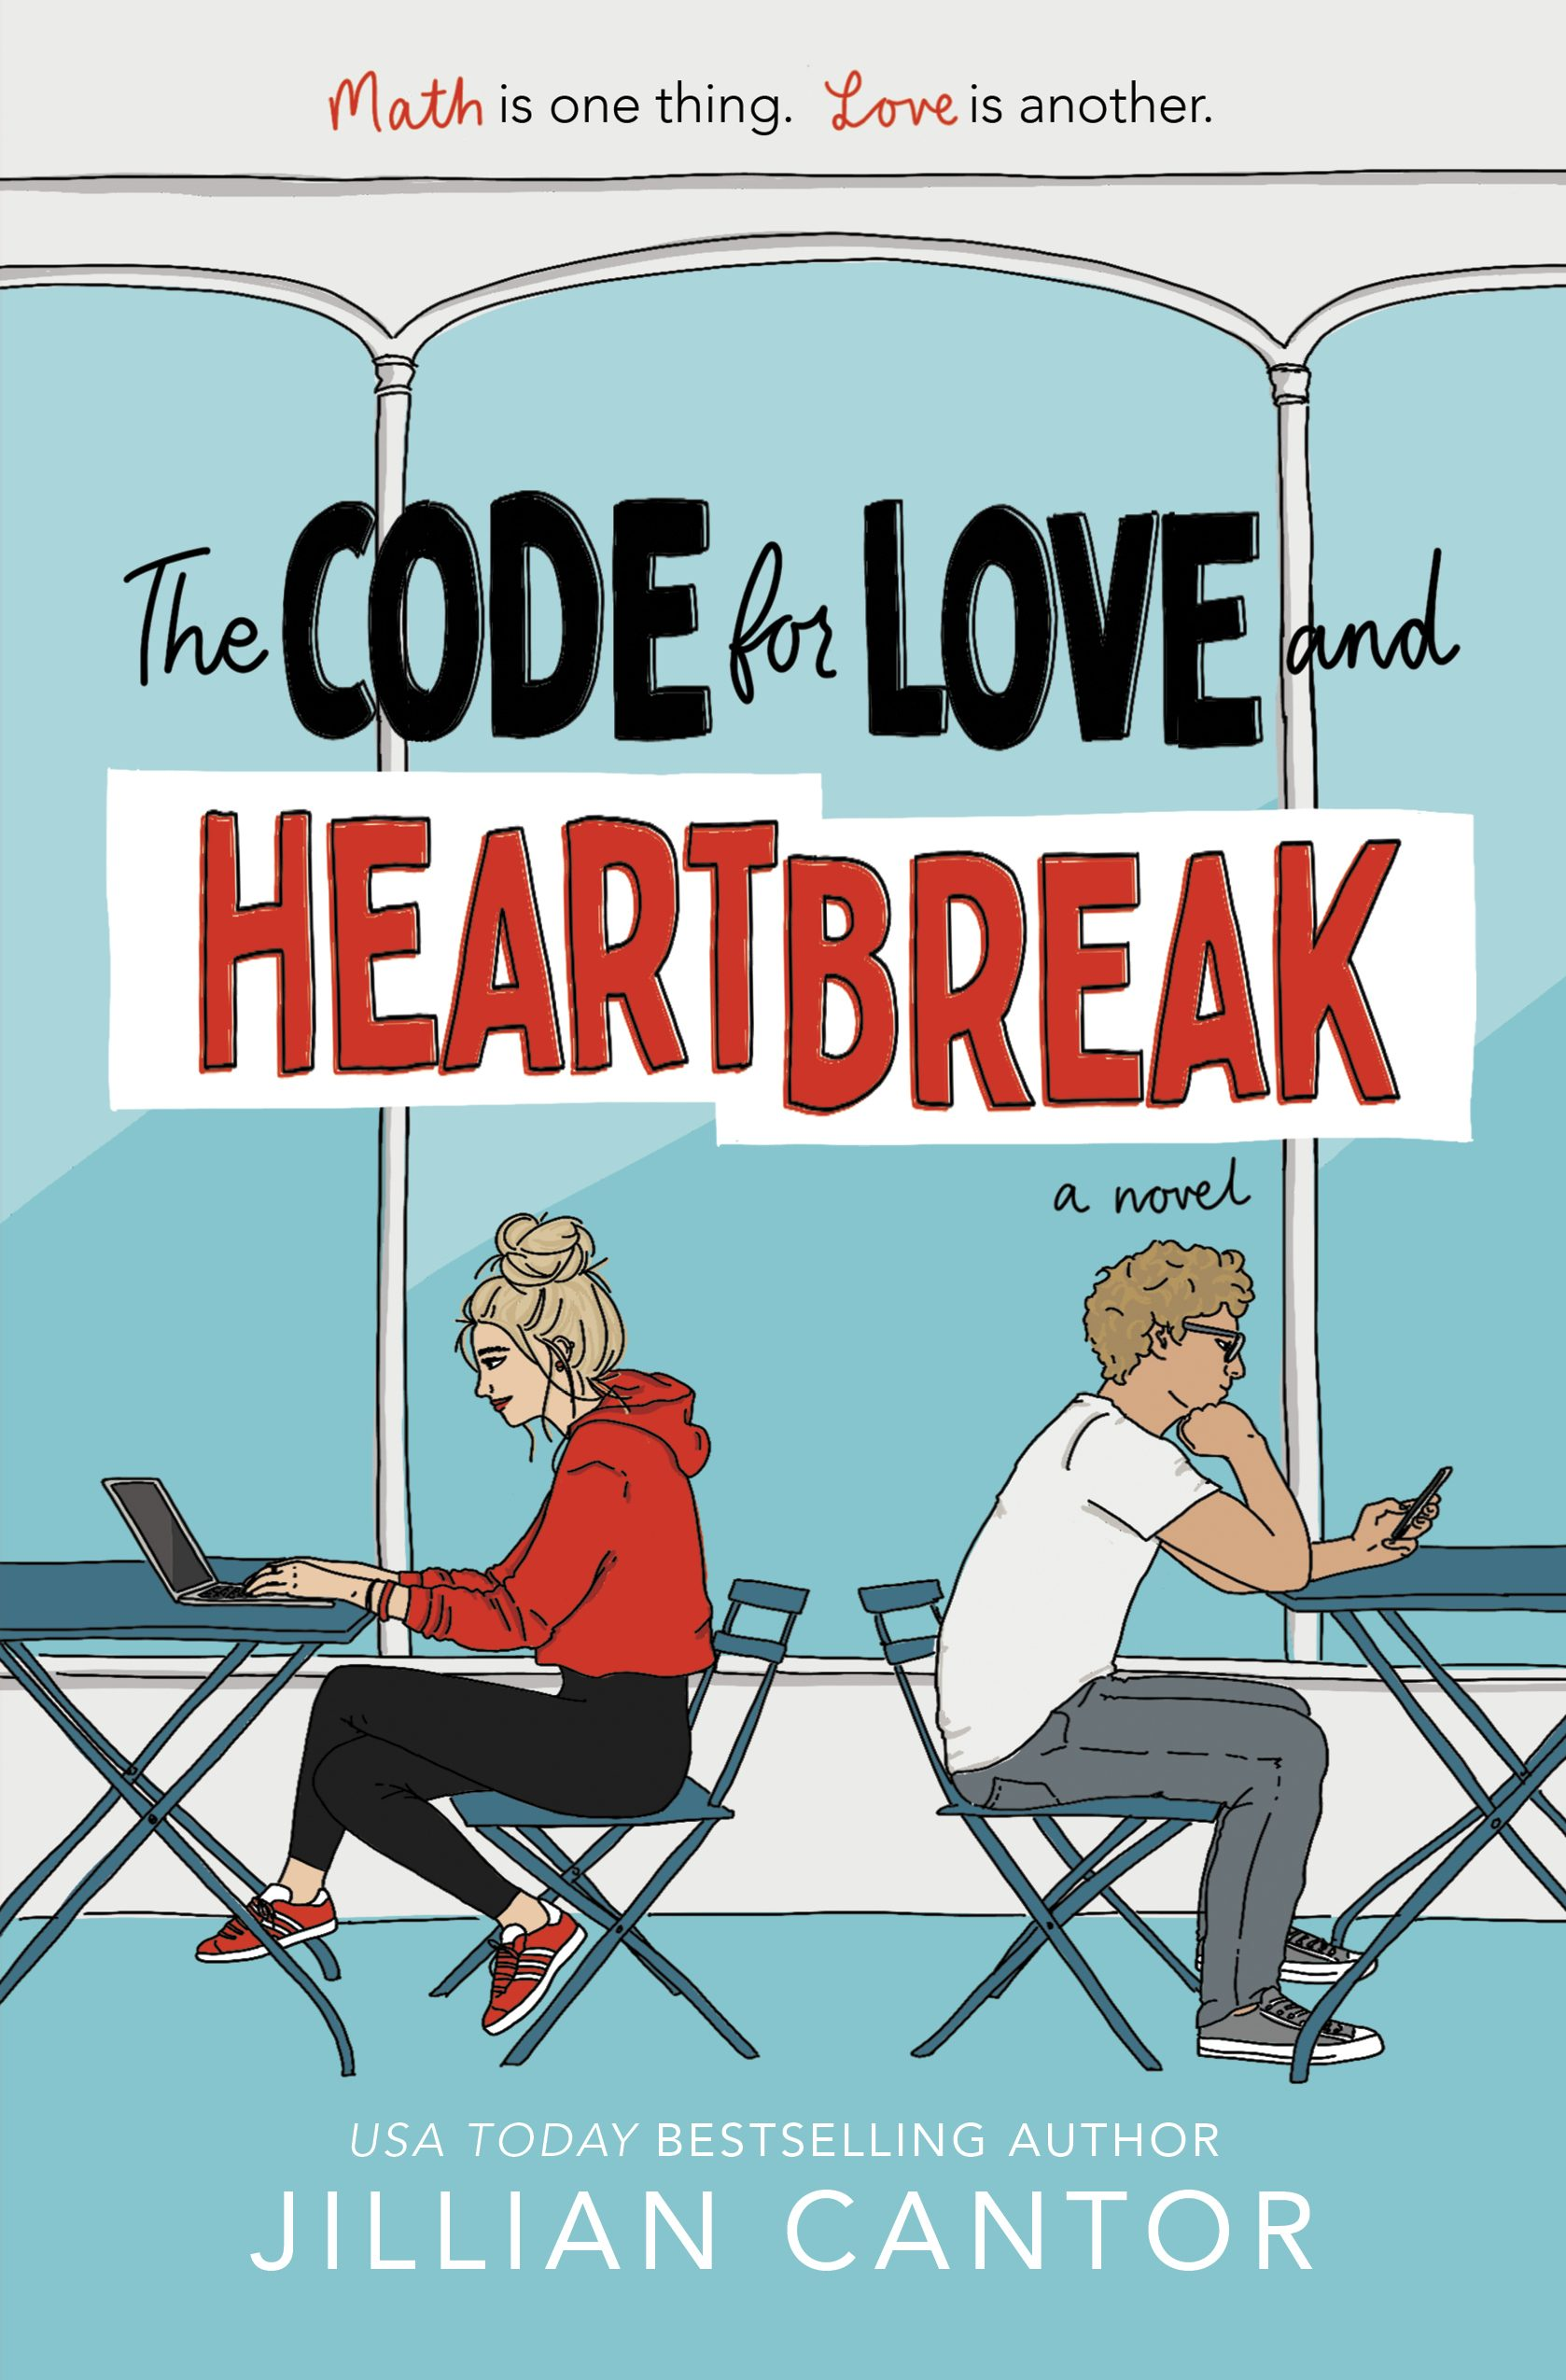 The Code For Love And Heartbreak By Jillian Cantor Release Date? 2020 YA Contemporary Romance